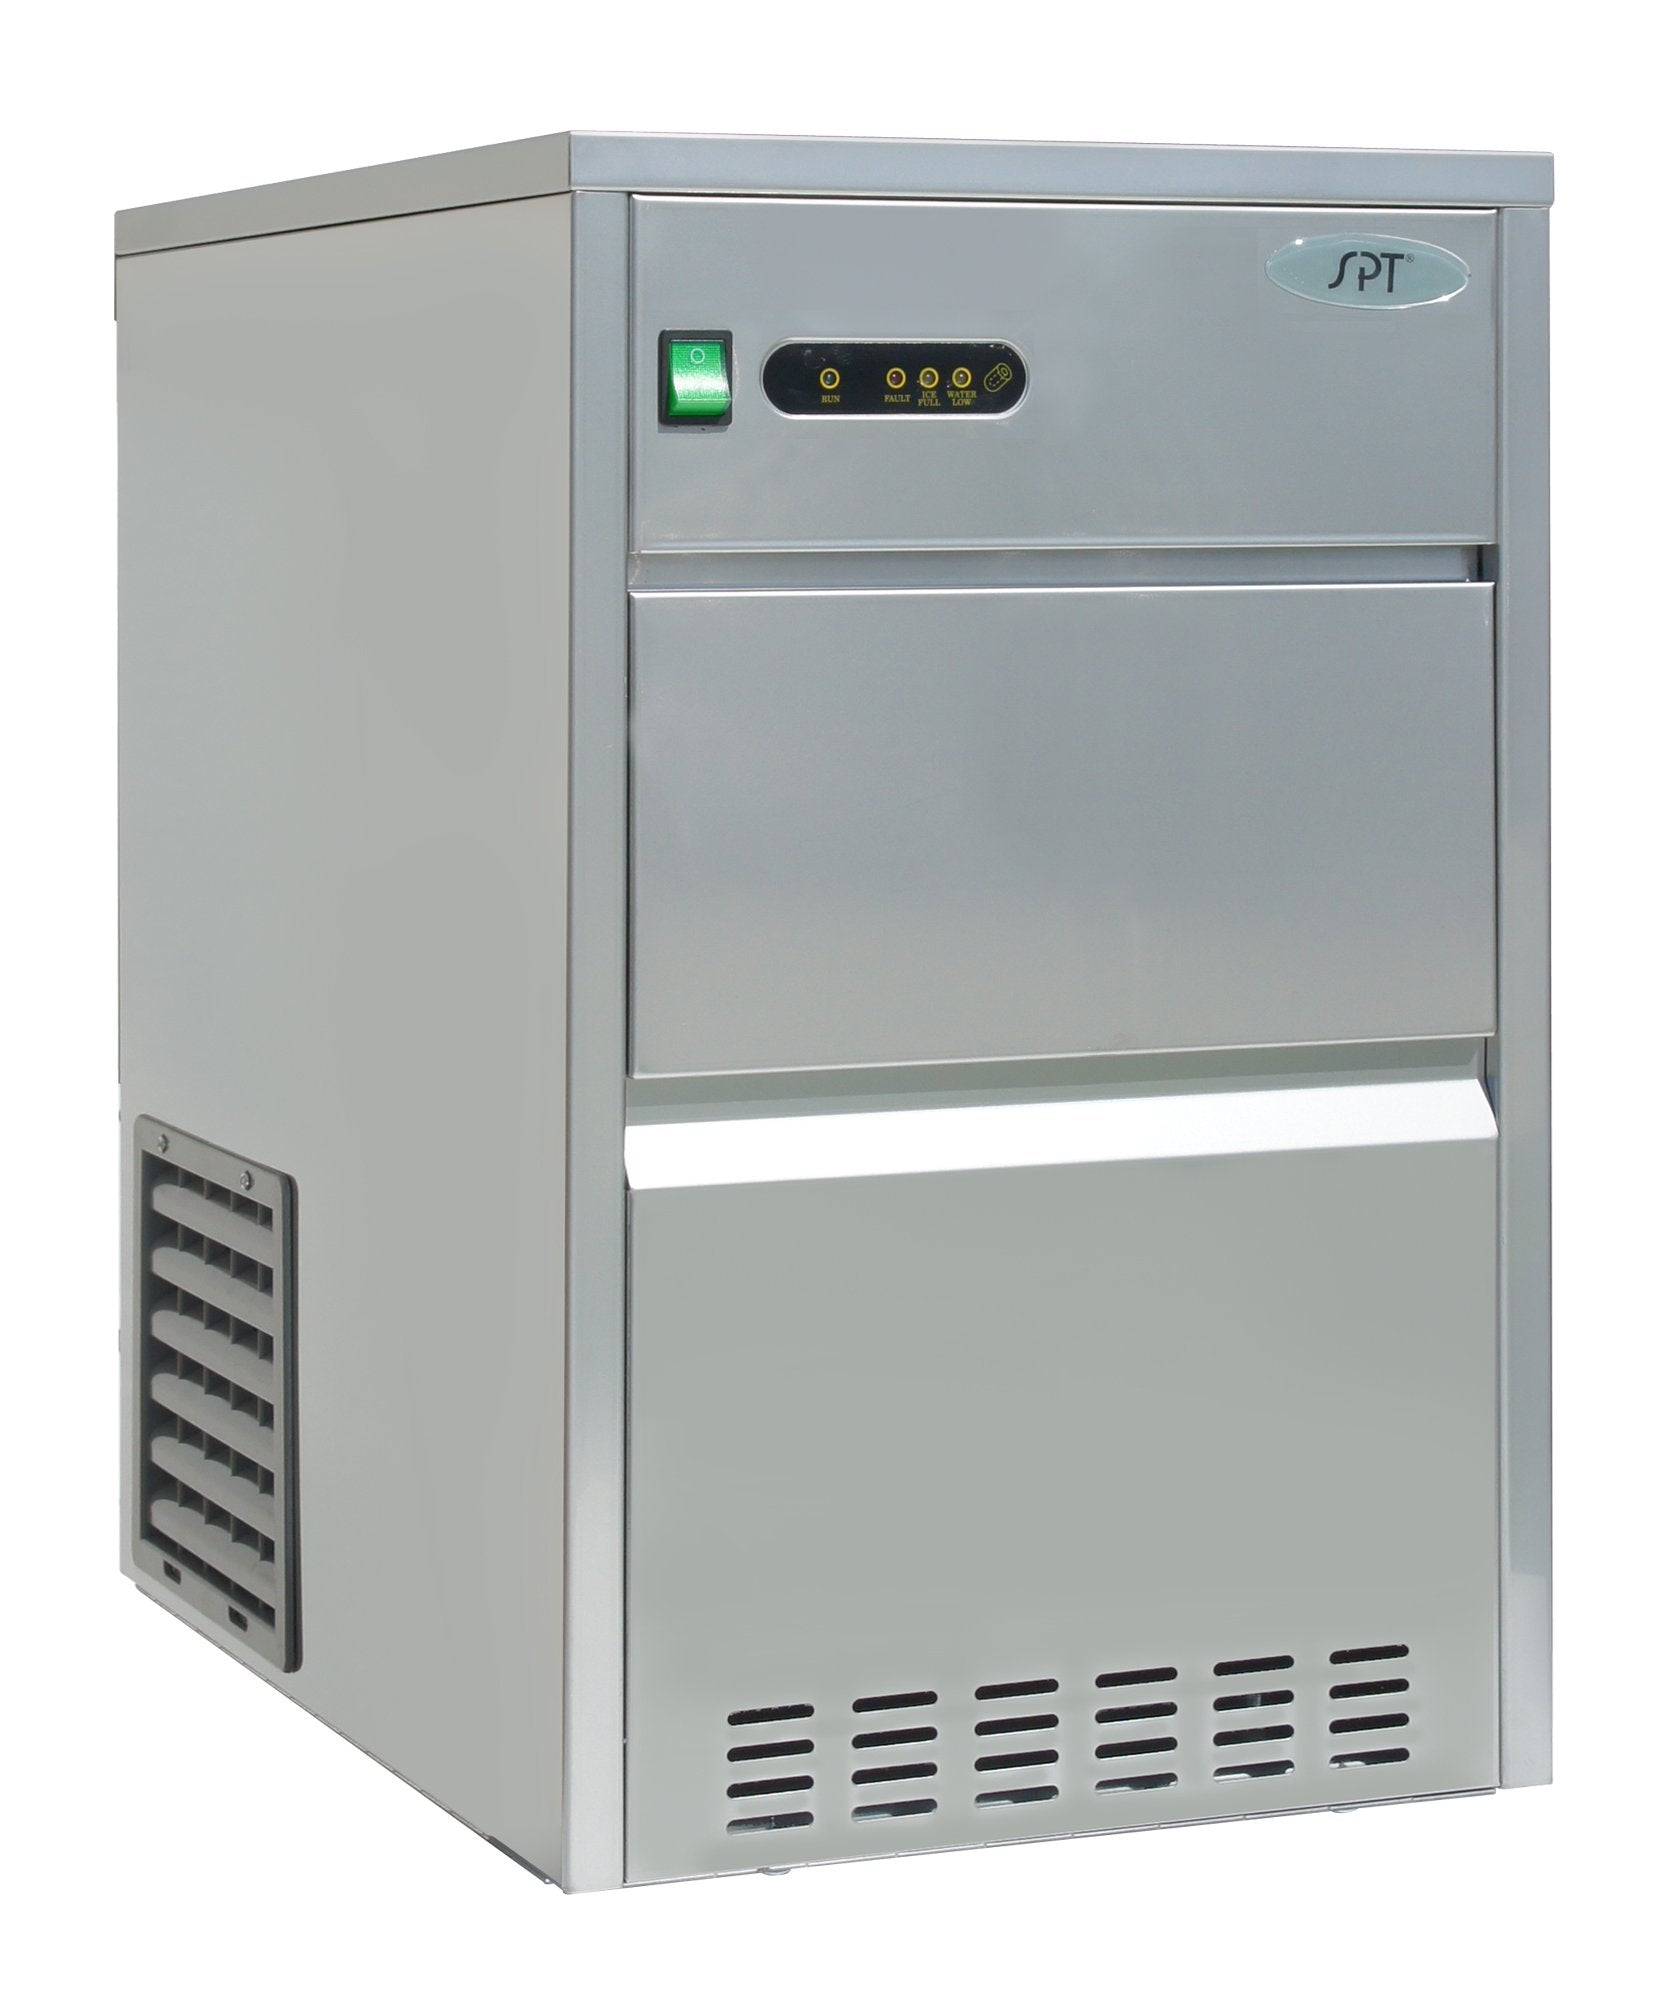 SPT IM-1109C 110 lbs Automatic Stainless Steel Ice Maker, Silver